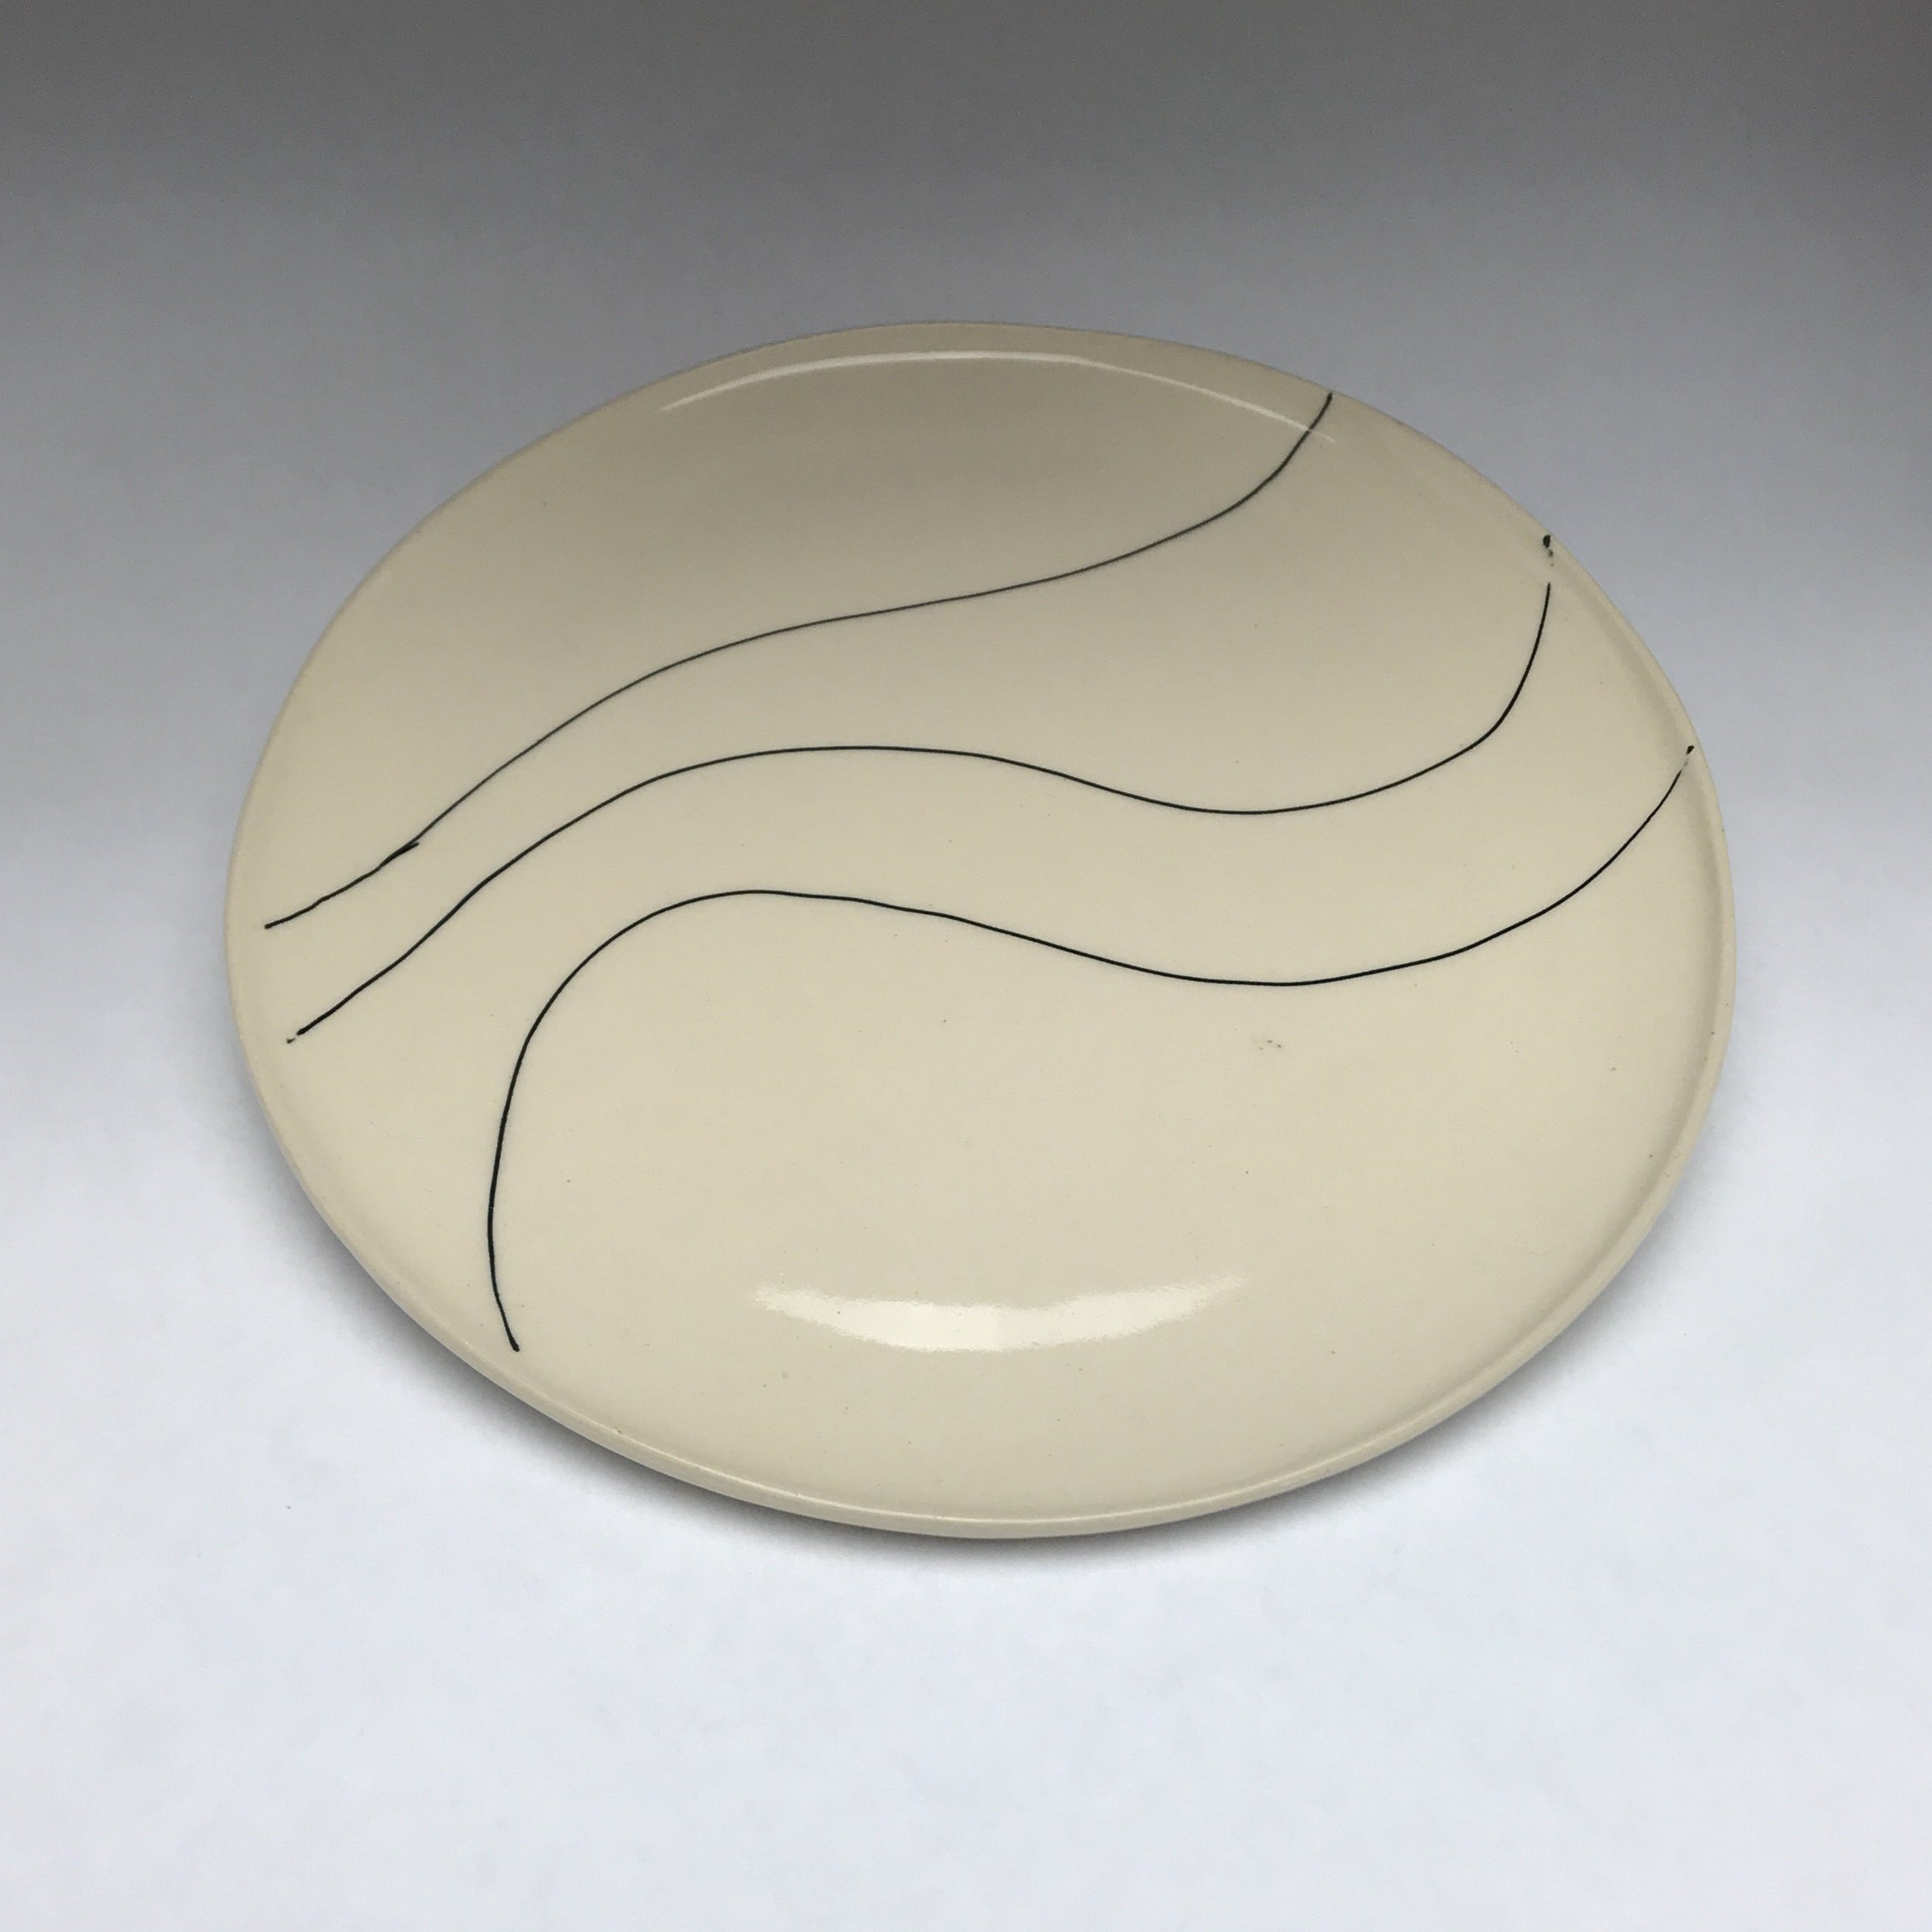 ceramic plate with black graphic linework reminiscent of graffiti